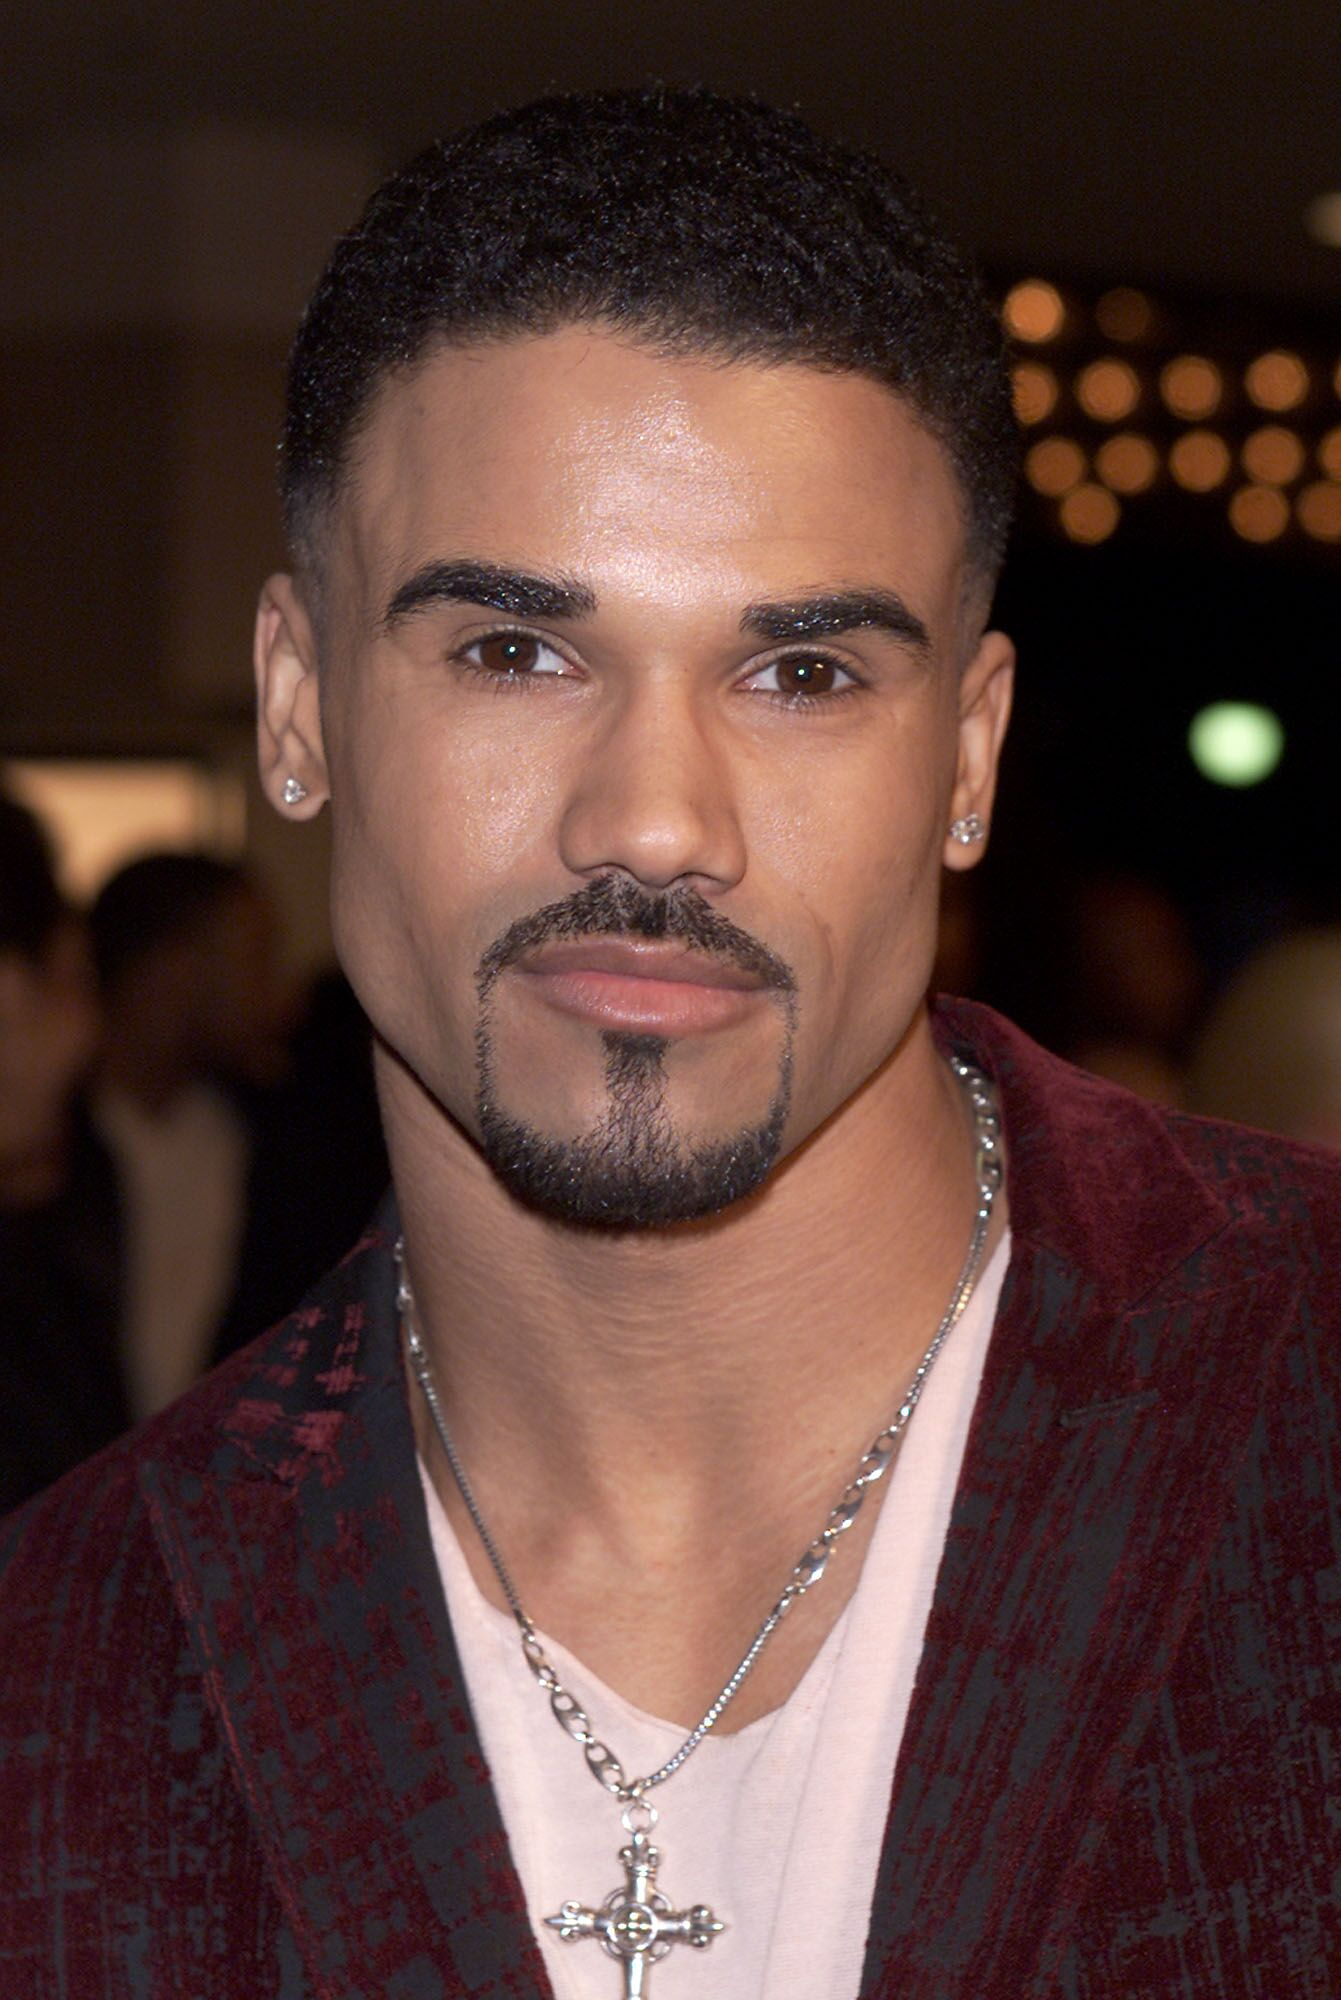 Shemar Moore at the premiere of 'The Brothers' at the Loews Century Plaza Theater in Los Angeles | Getty Images